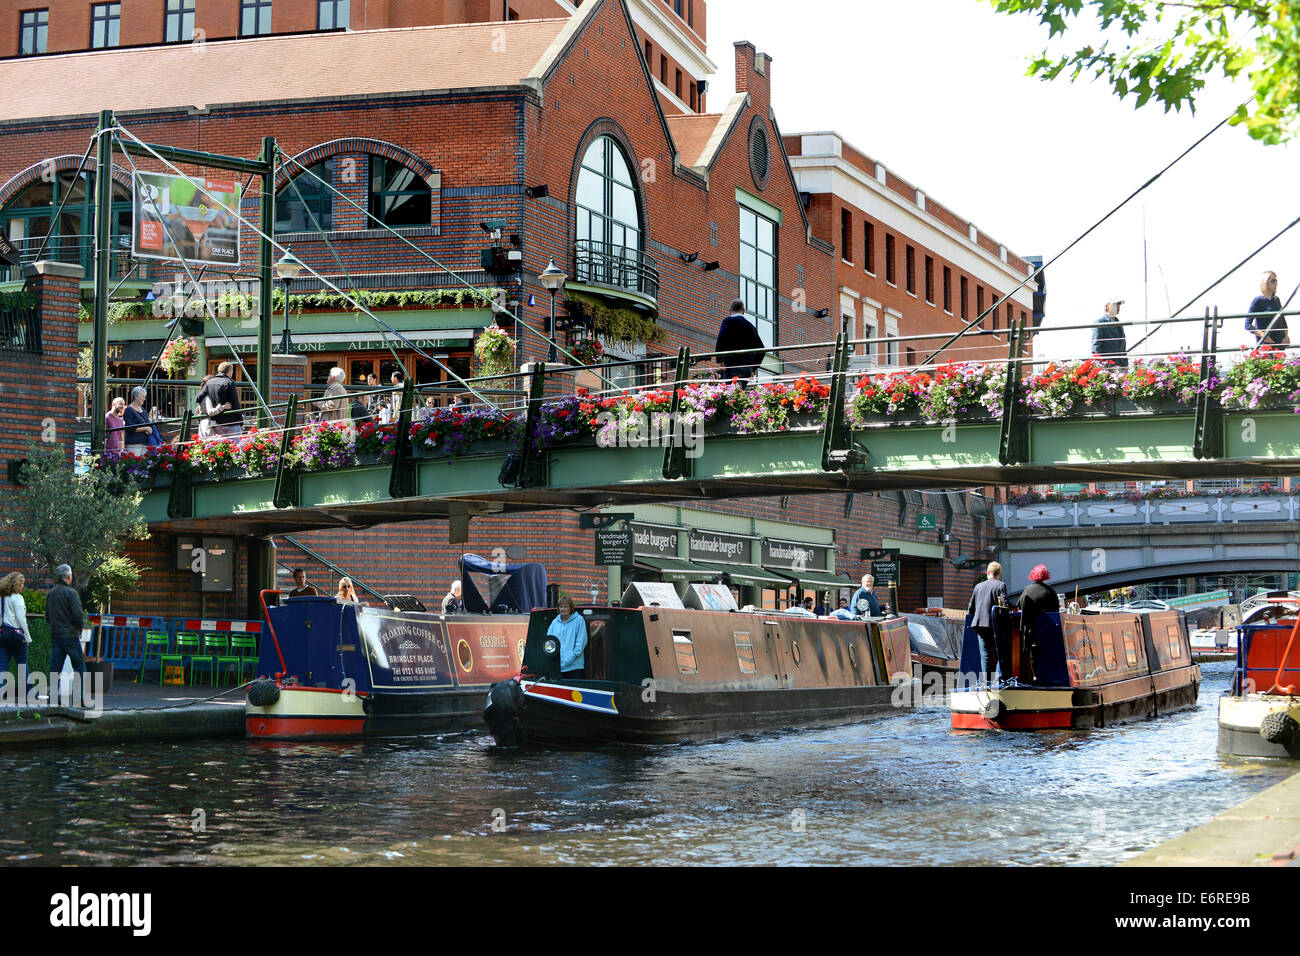 Birmingham canals waterways narrowboats on canal at Brindley Place Uk - Stock Image